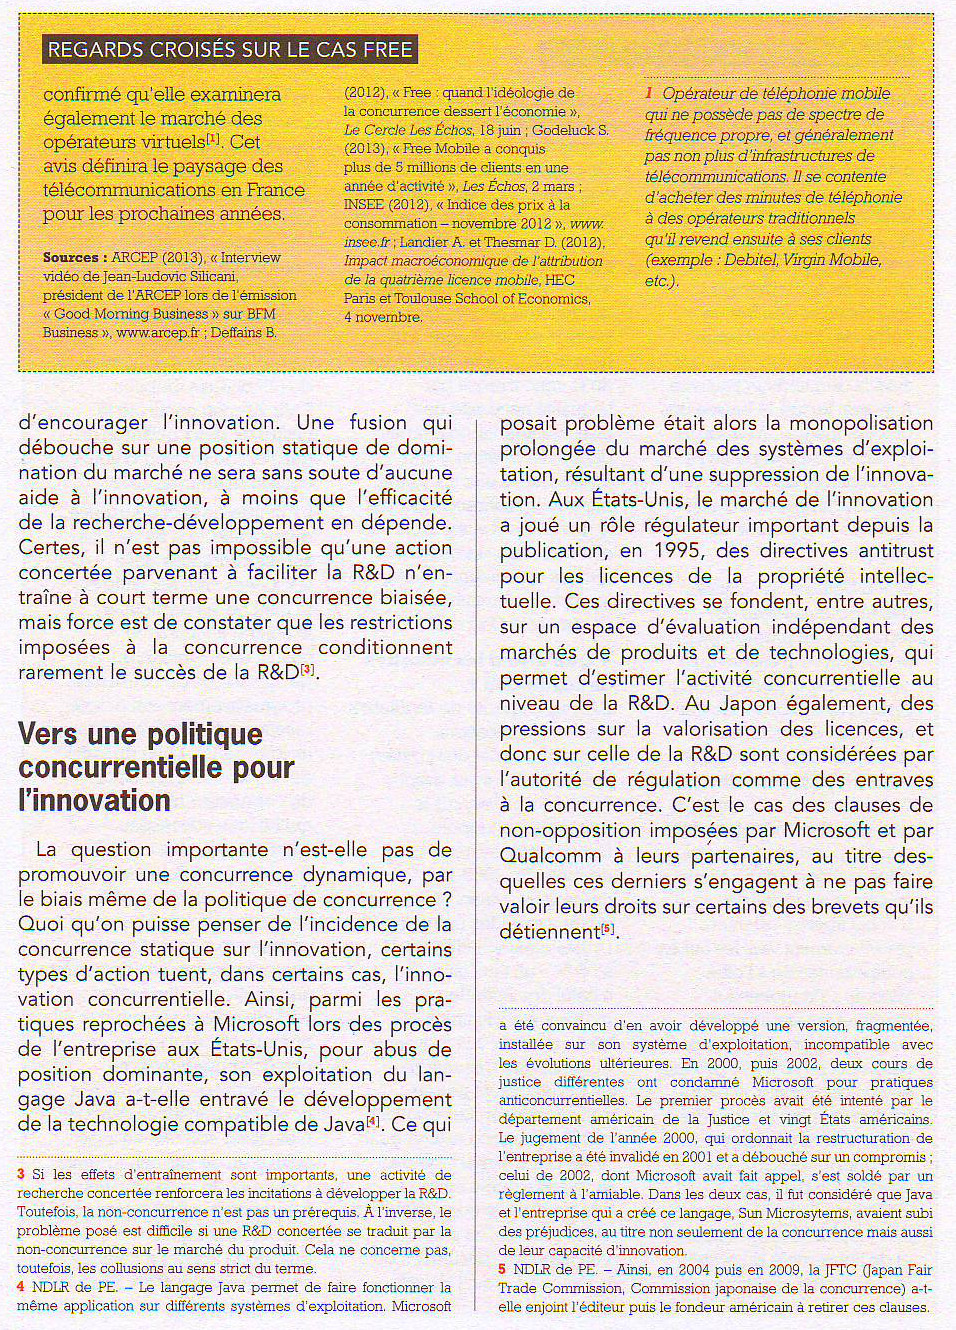 Concurrence et innovation, une relation complexe